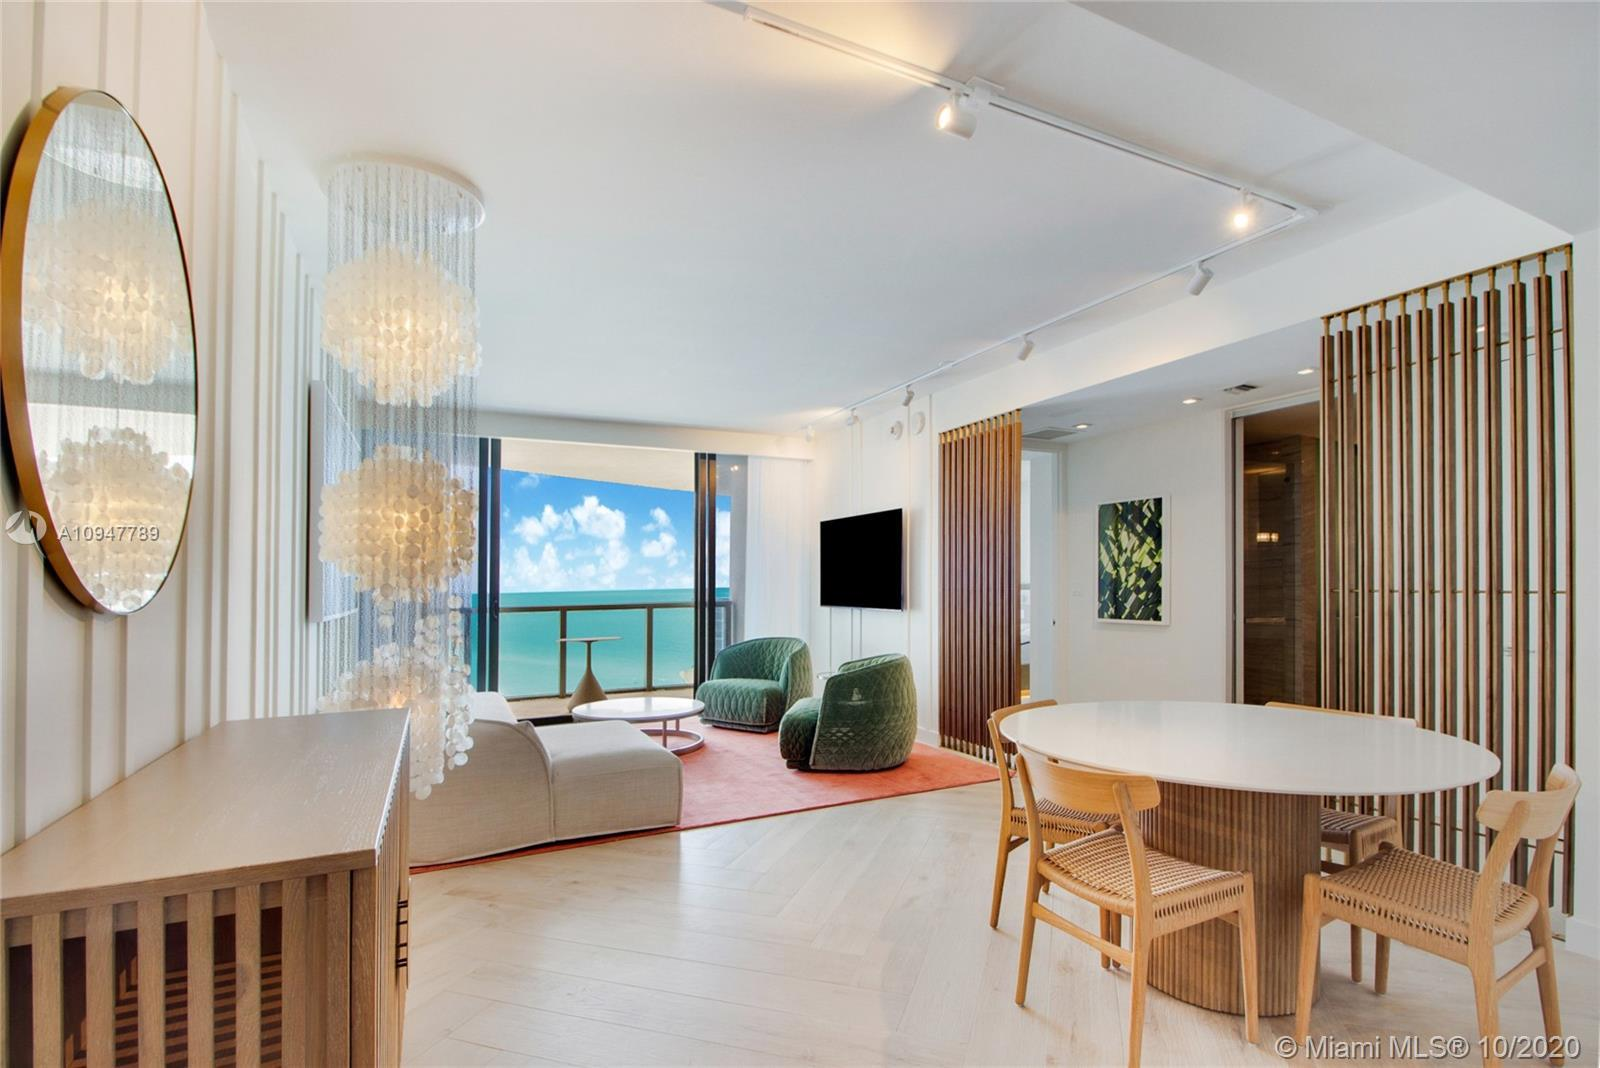 Purchase a true Oasis in the center of South Beach. As one of the few W Owners you will receive acce